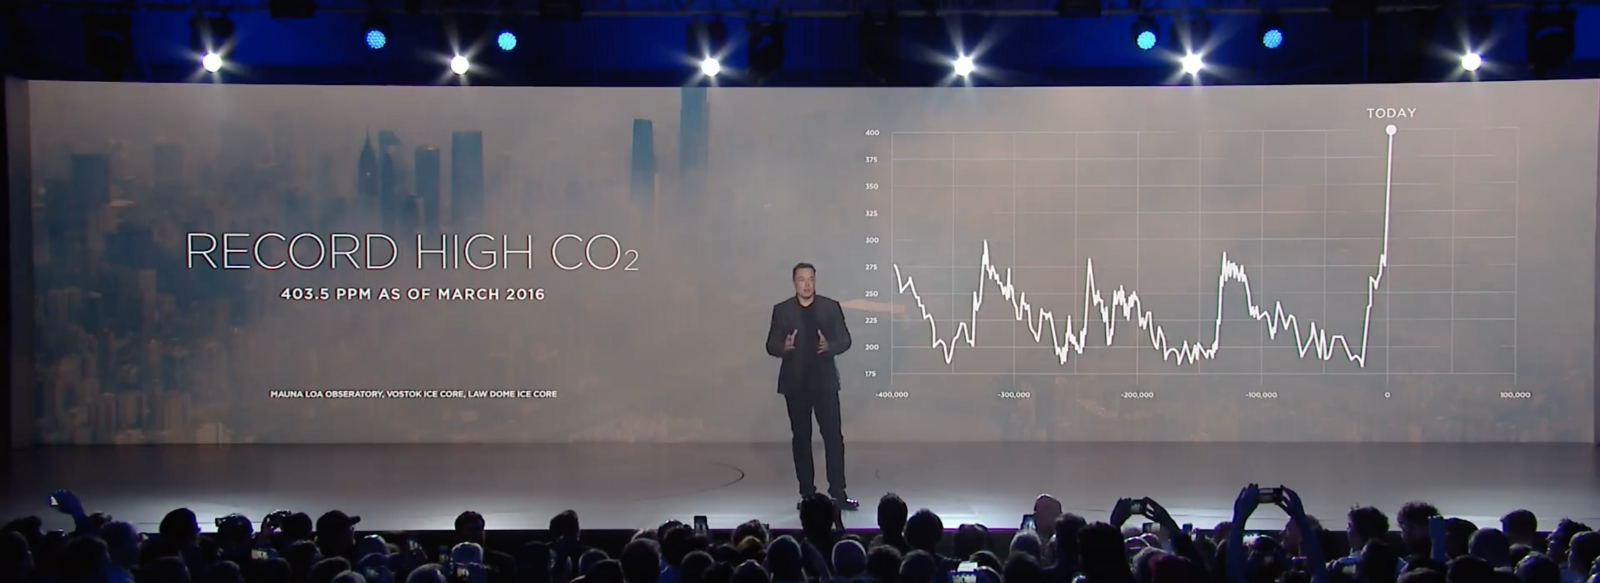 Musk starts his pitch by calling attention to a profound change: Record high CO₂ concentration growth